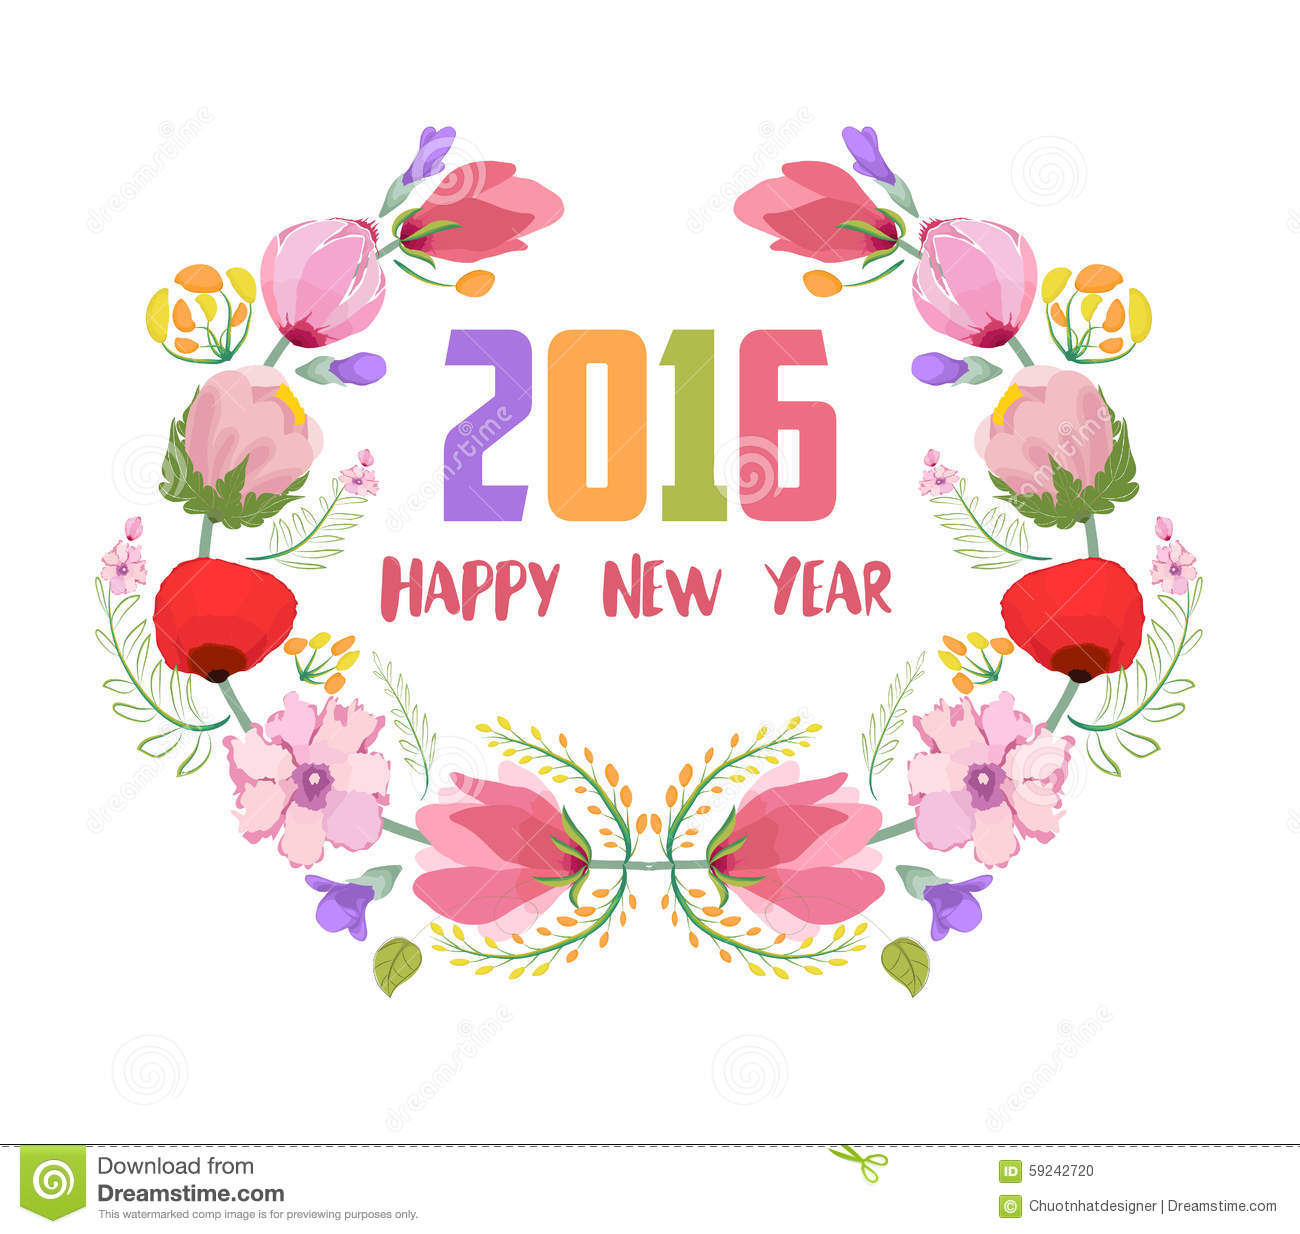 New year 2016 stock photo image 58693644 - Happy New Year 2016 Watercolor Flowers Frame Stock Illustration 1300x1234